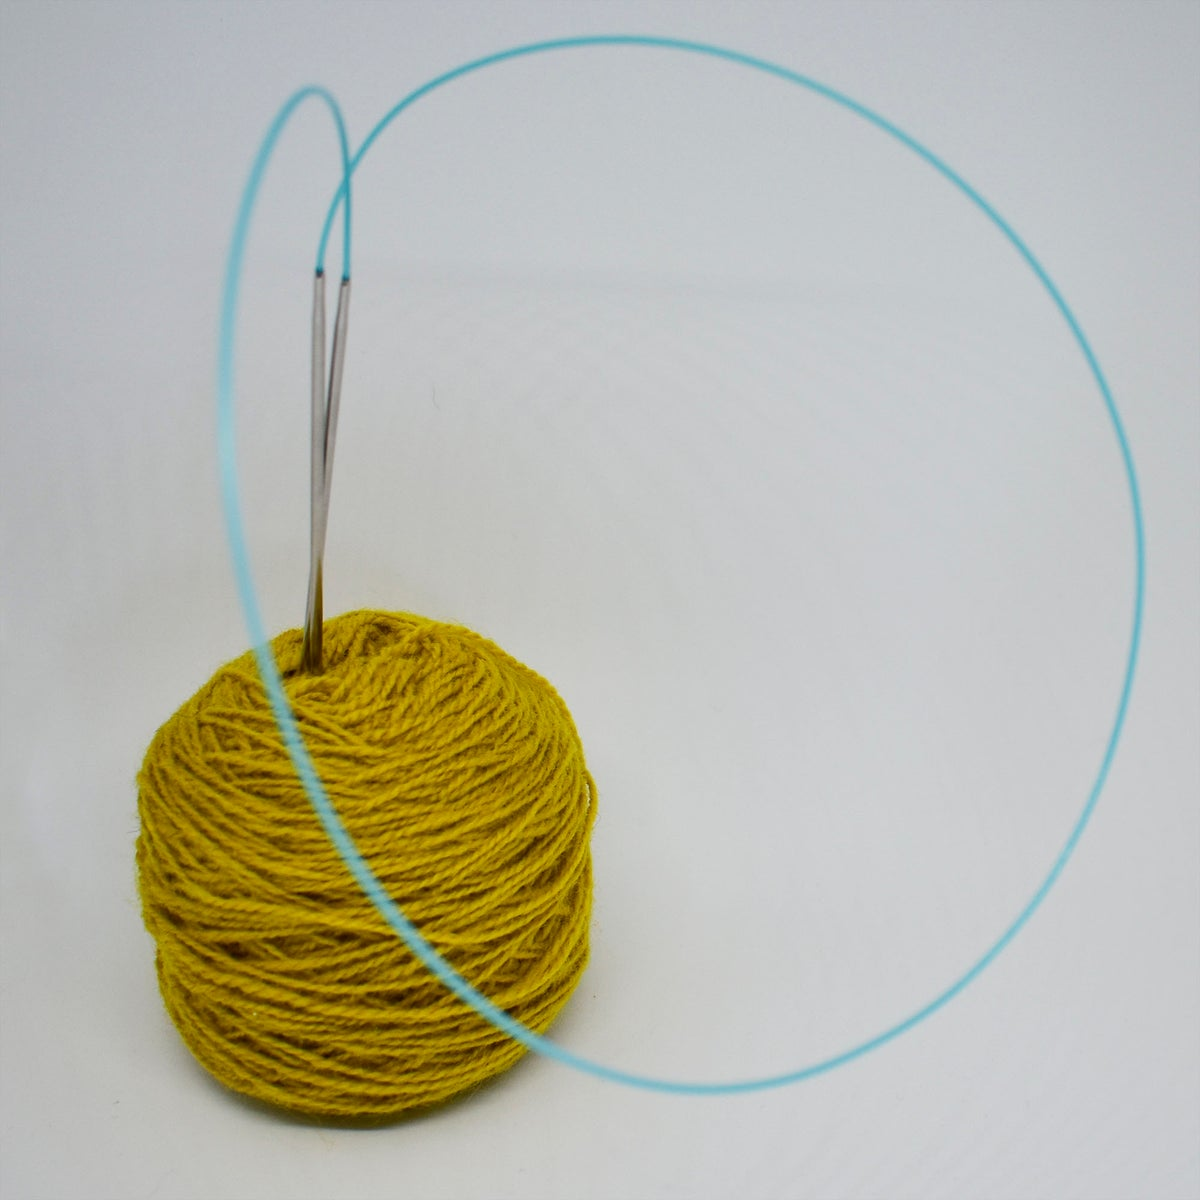 HiyaHiya Circular knitting needles - Sharp